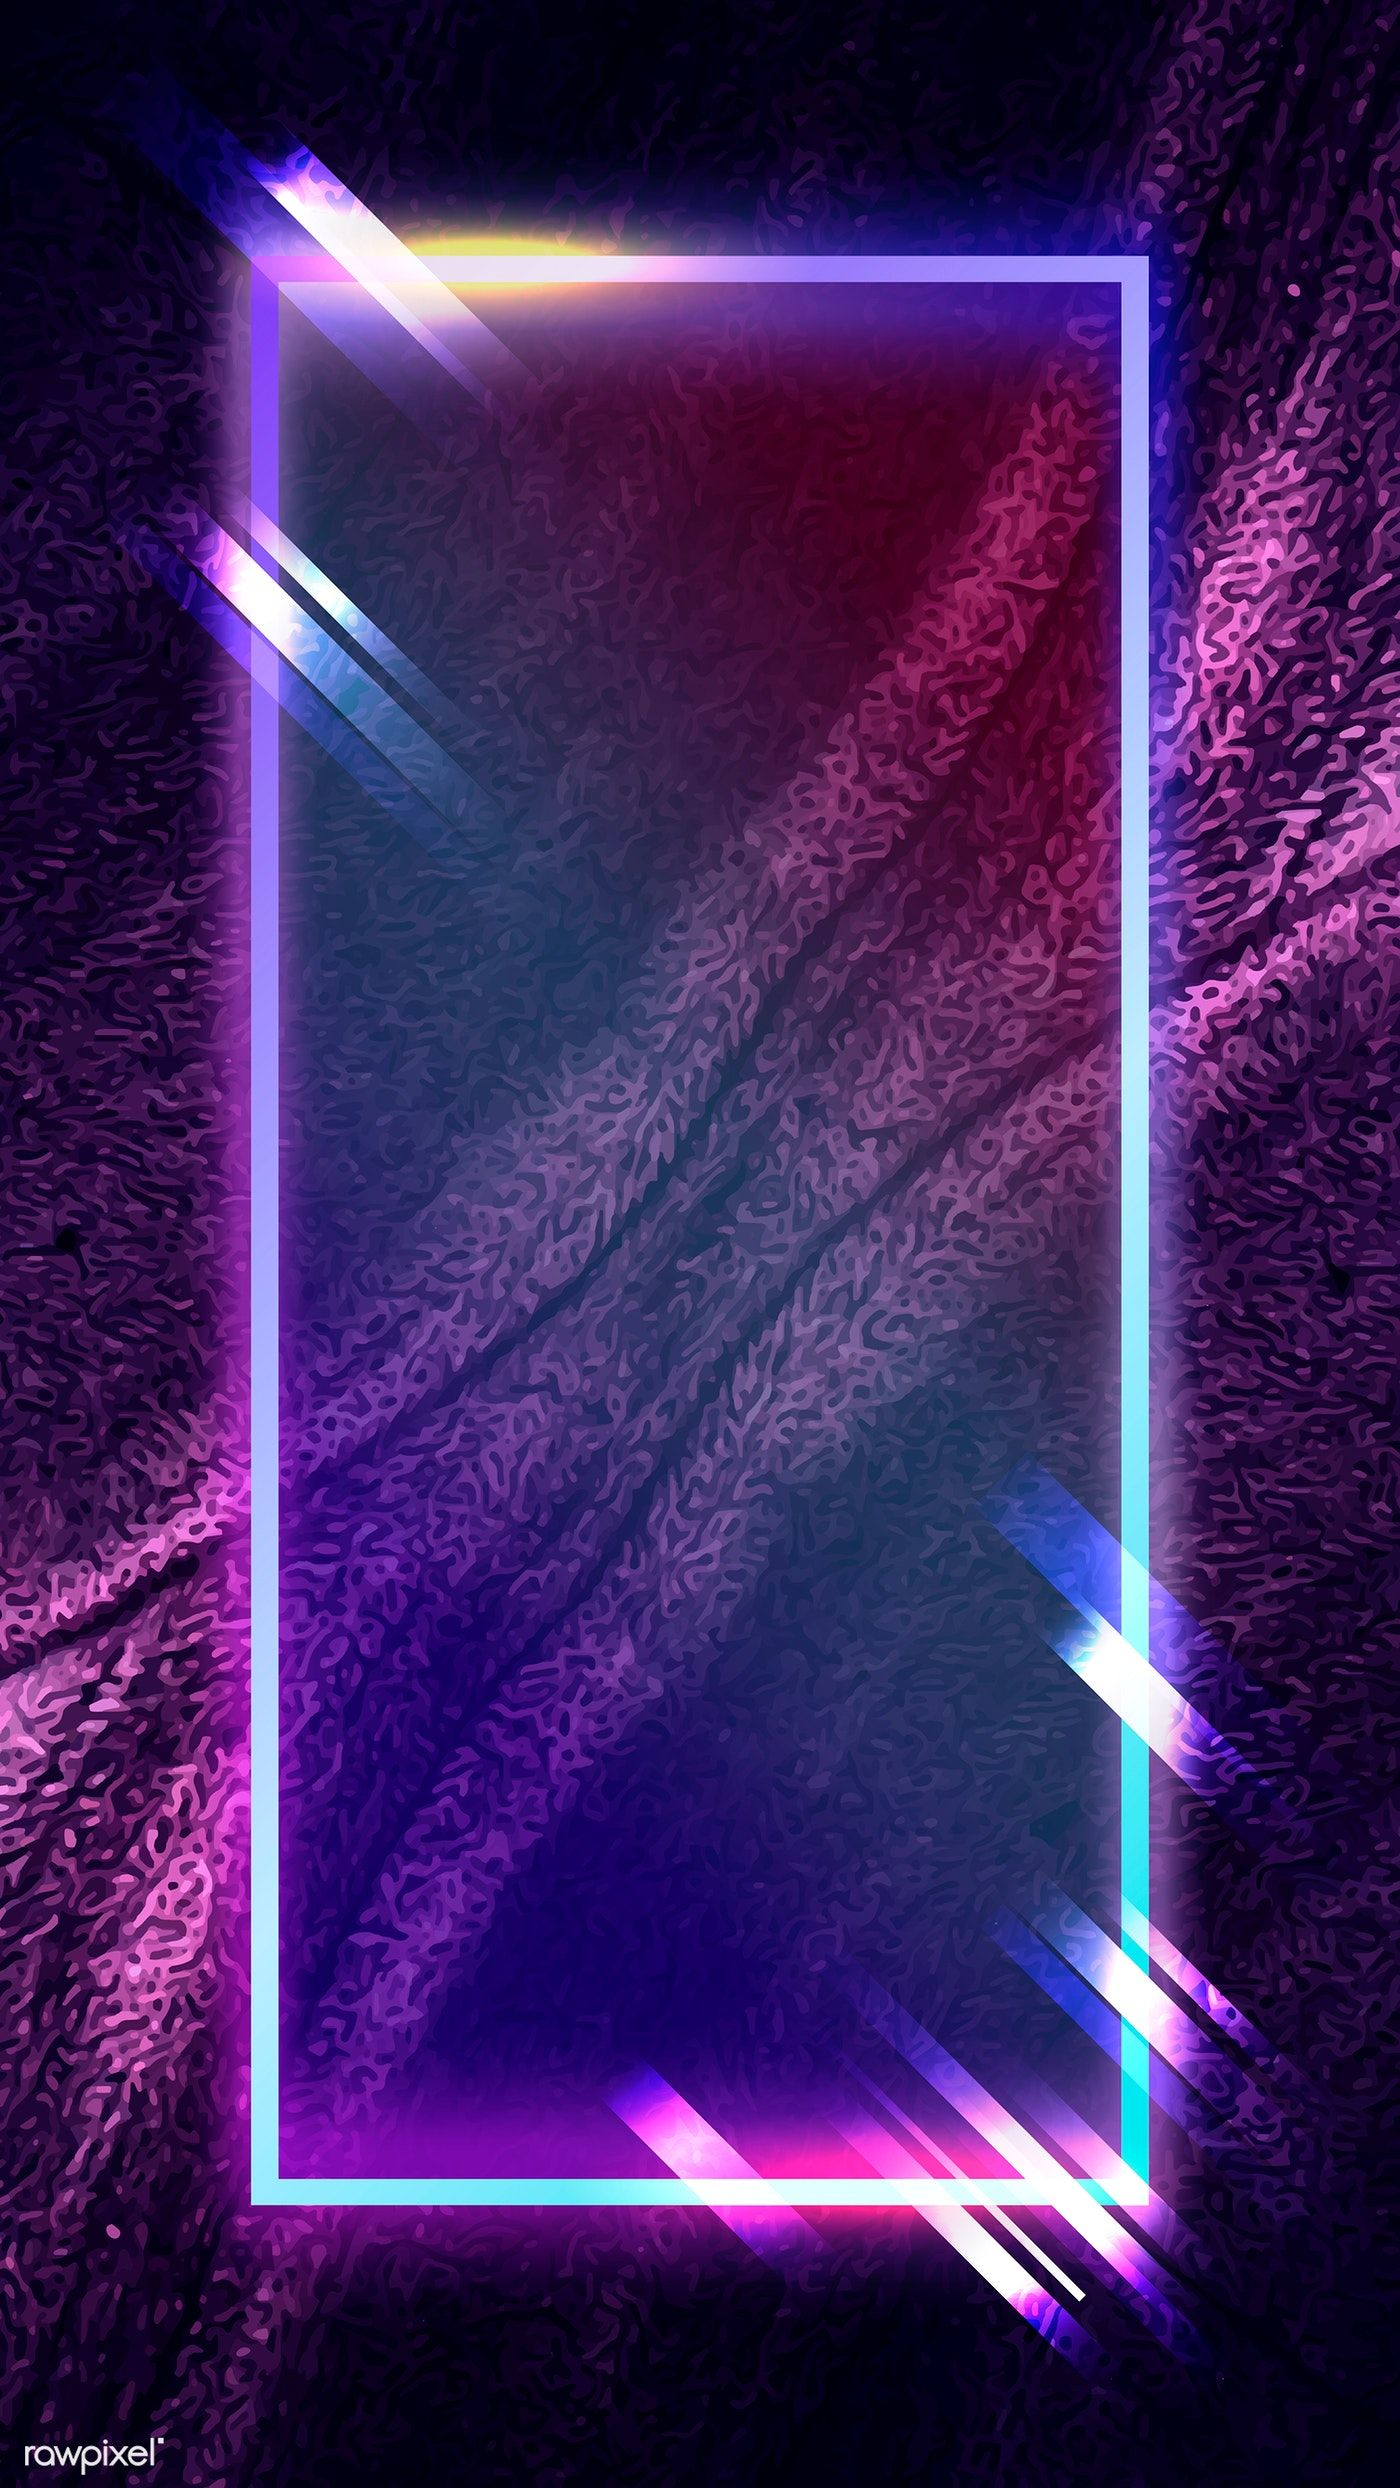 Rectangle Frame On Abstract Mobile Phone Wallpaper Vector Premium Image By Rawpixel Com Kenbaolocpro Simple Background Images Abstract Neon Wallpaper